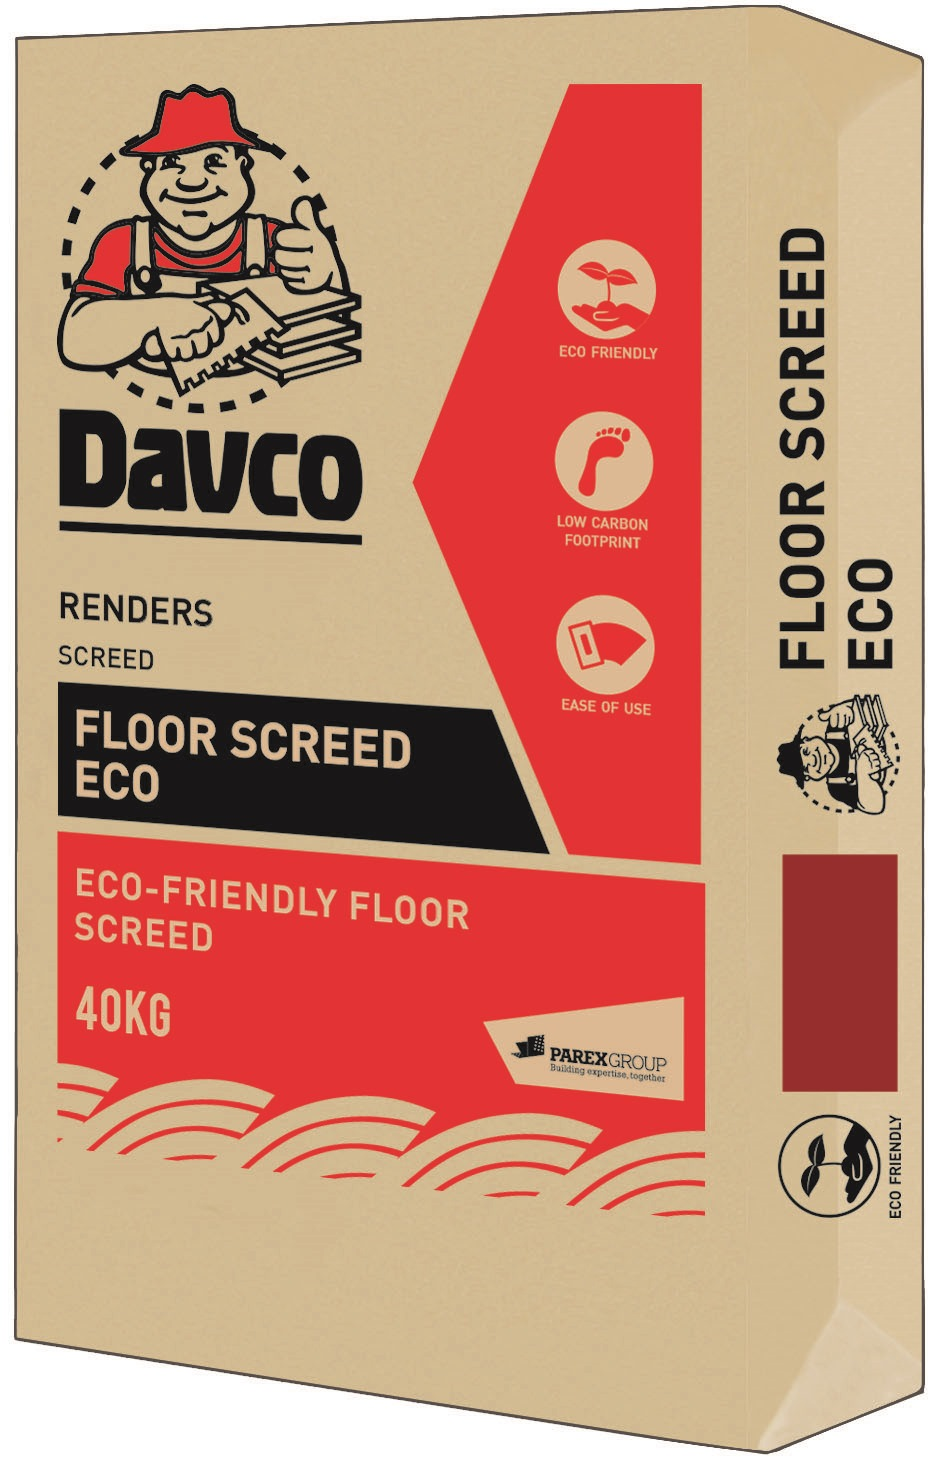 How To Screed A Floor >> DAVCO FLOOR SCREED ECO 40KG/BAG   Fillers, Putty & Waterproofing   Horme Singapore